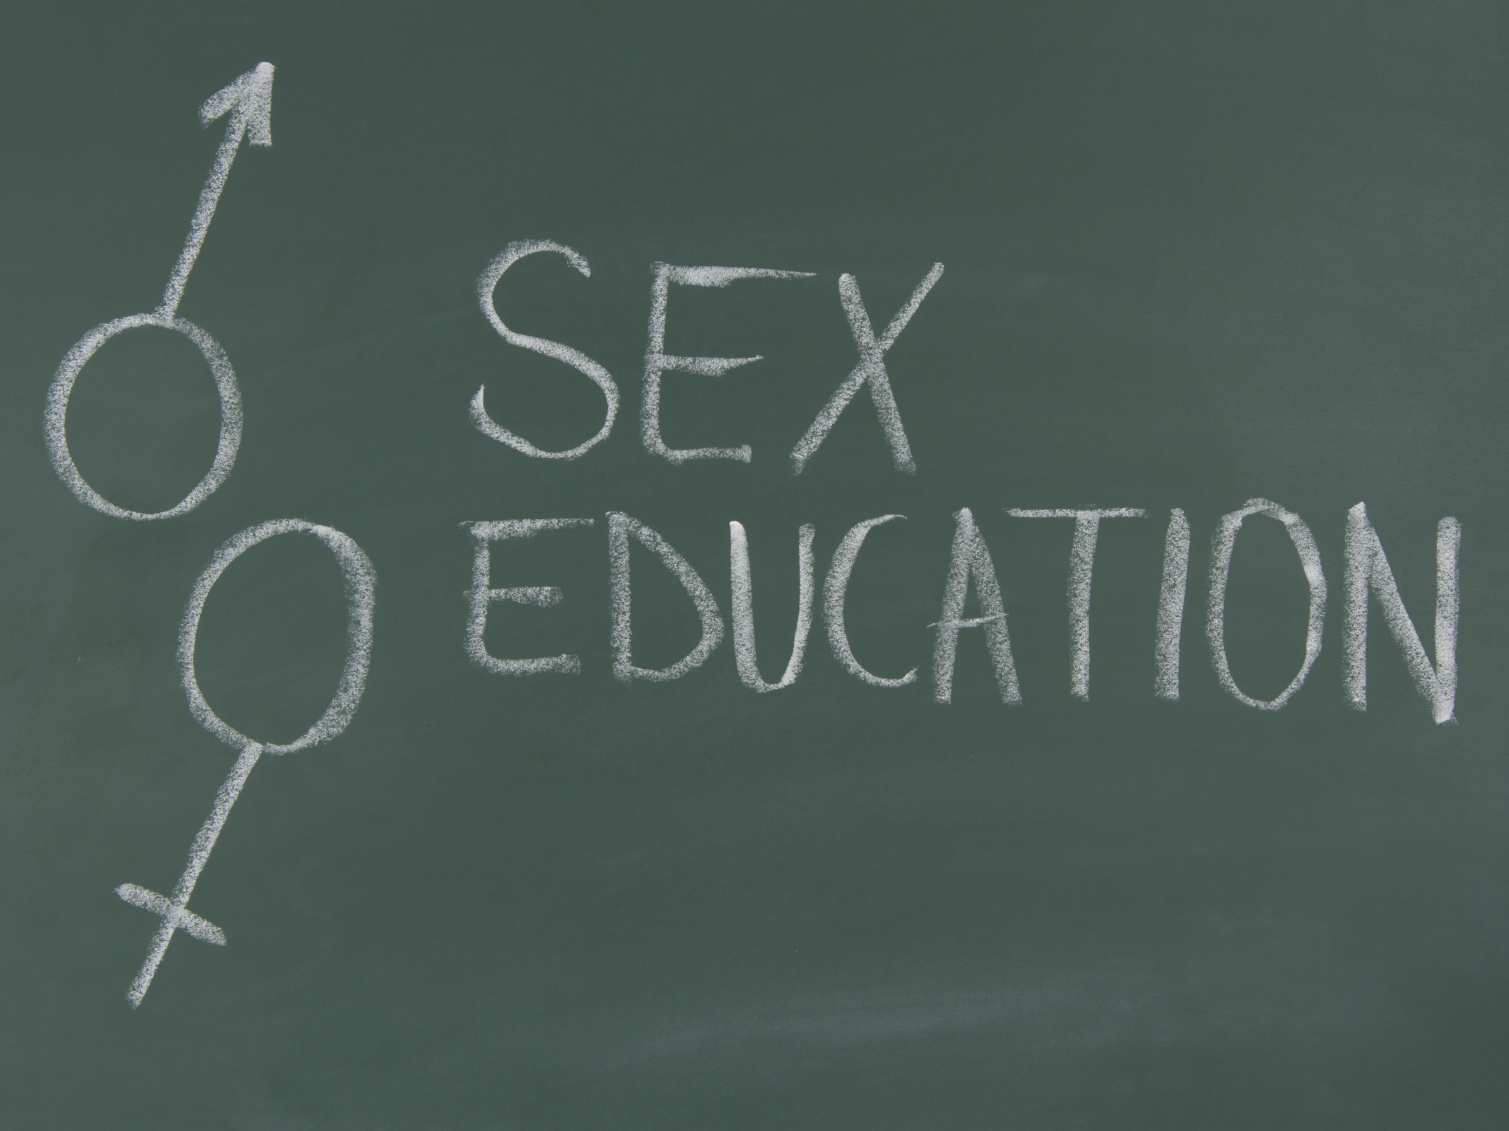 Sex Education Org 92